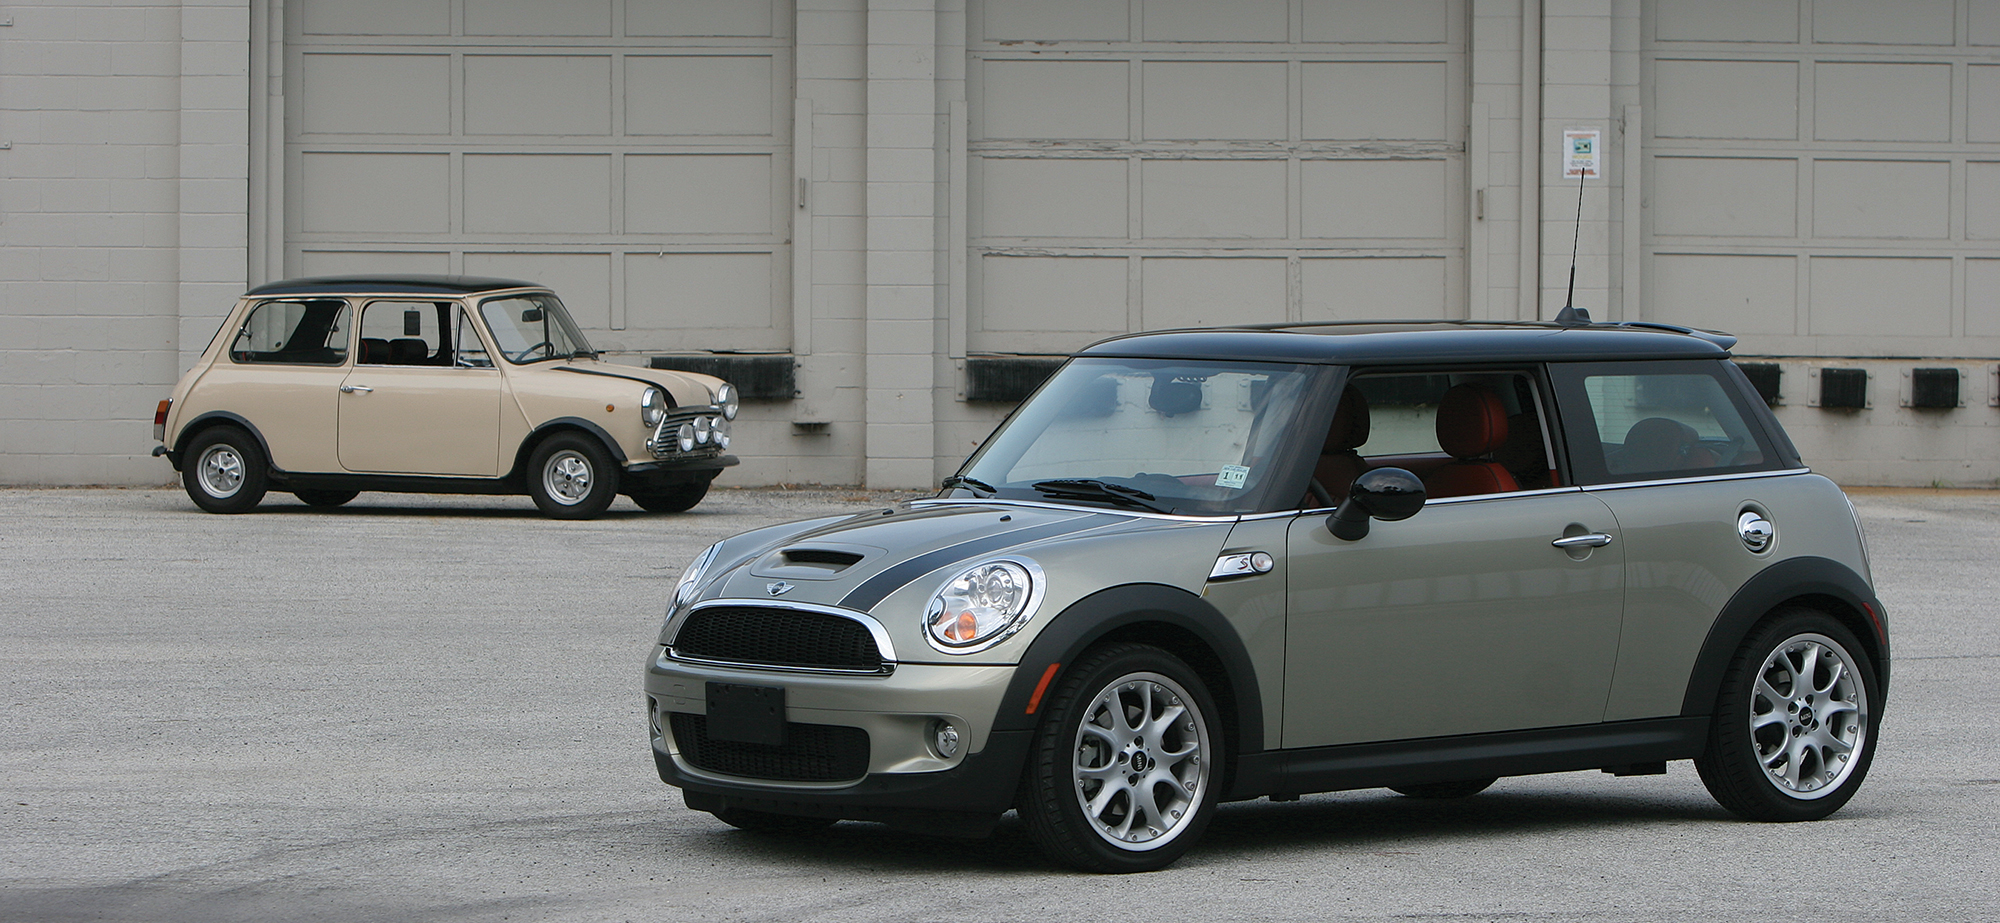 Tech Tips: R53 and R56 Mini Cooper | Articles | Grassroots